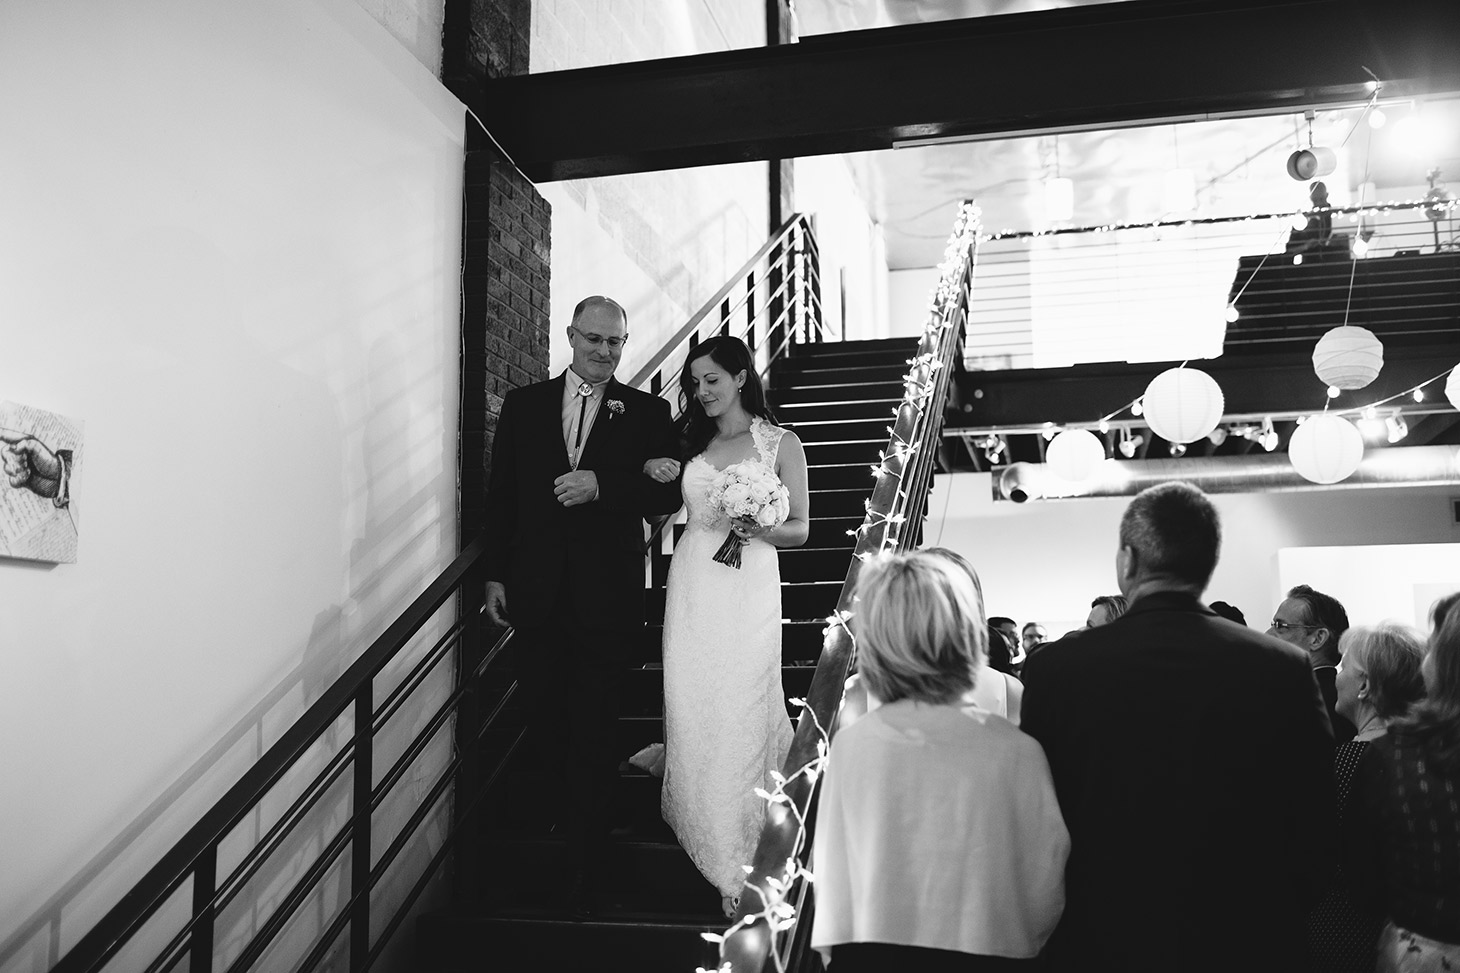 Megan-Newton-Photography-Best-Wedding-Photos-2015-259